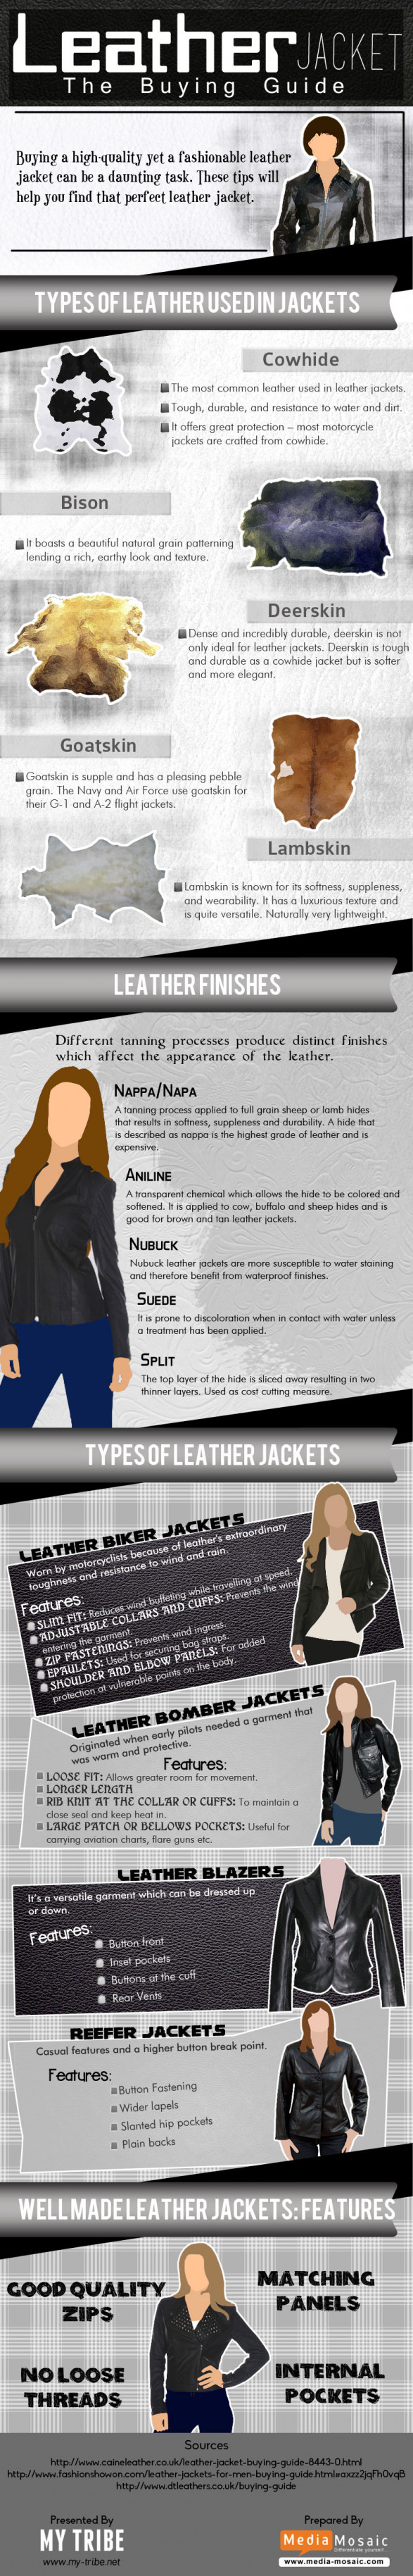 Leather Jacket: The Buying Guide